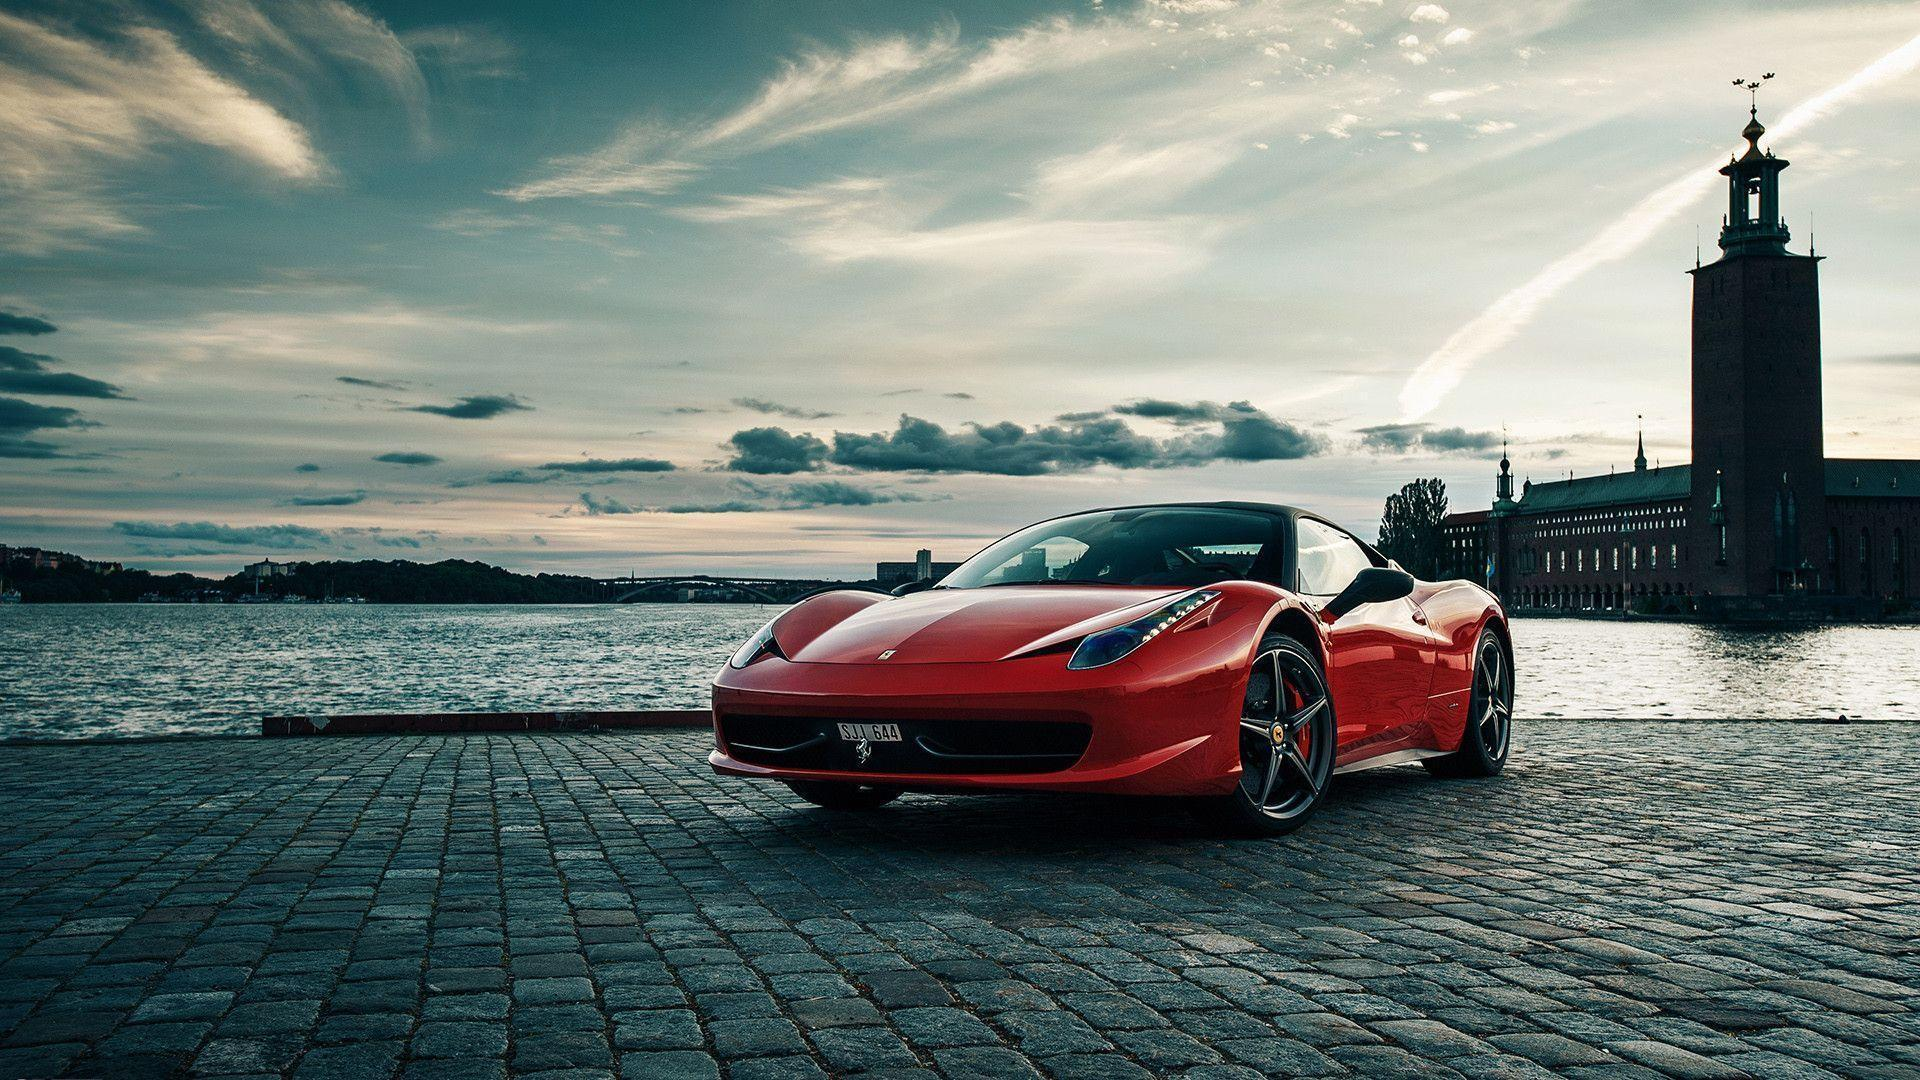 Ferrari 458 Italia 2013 Wallpapers